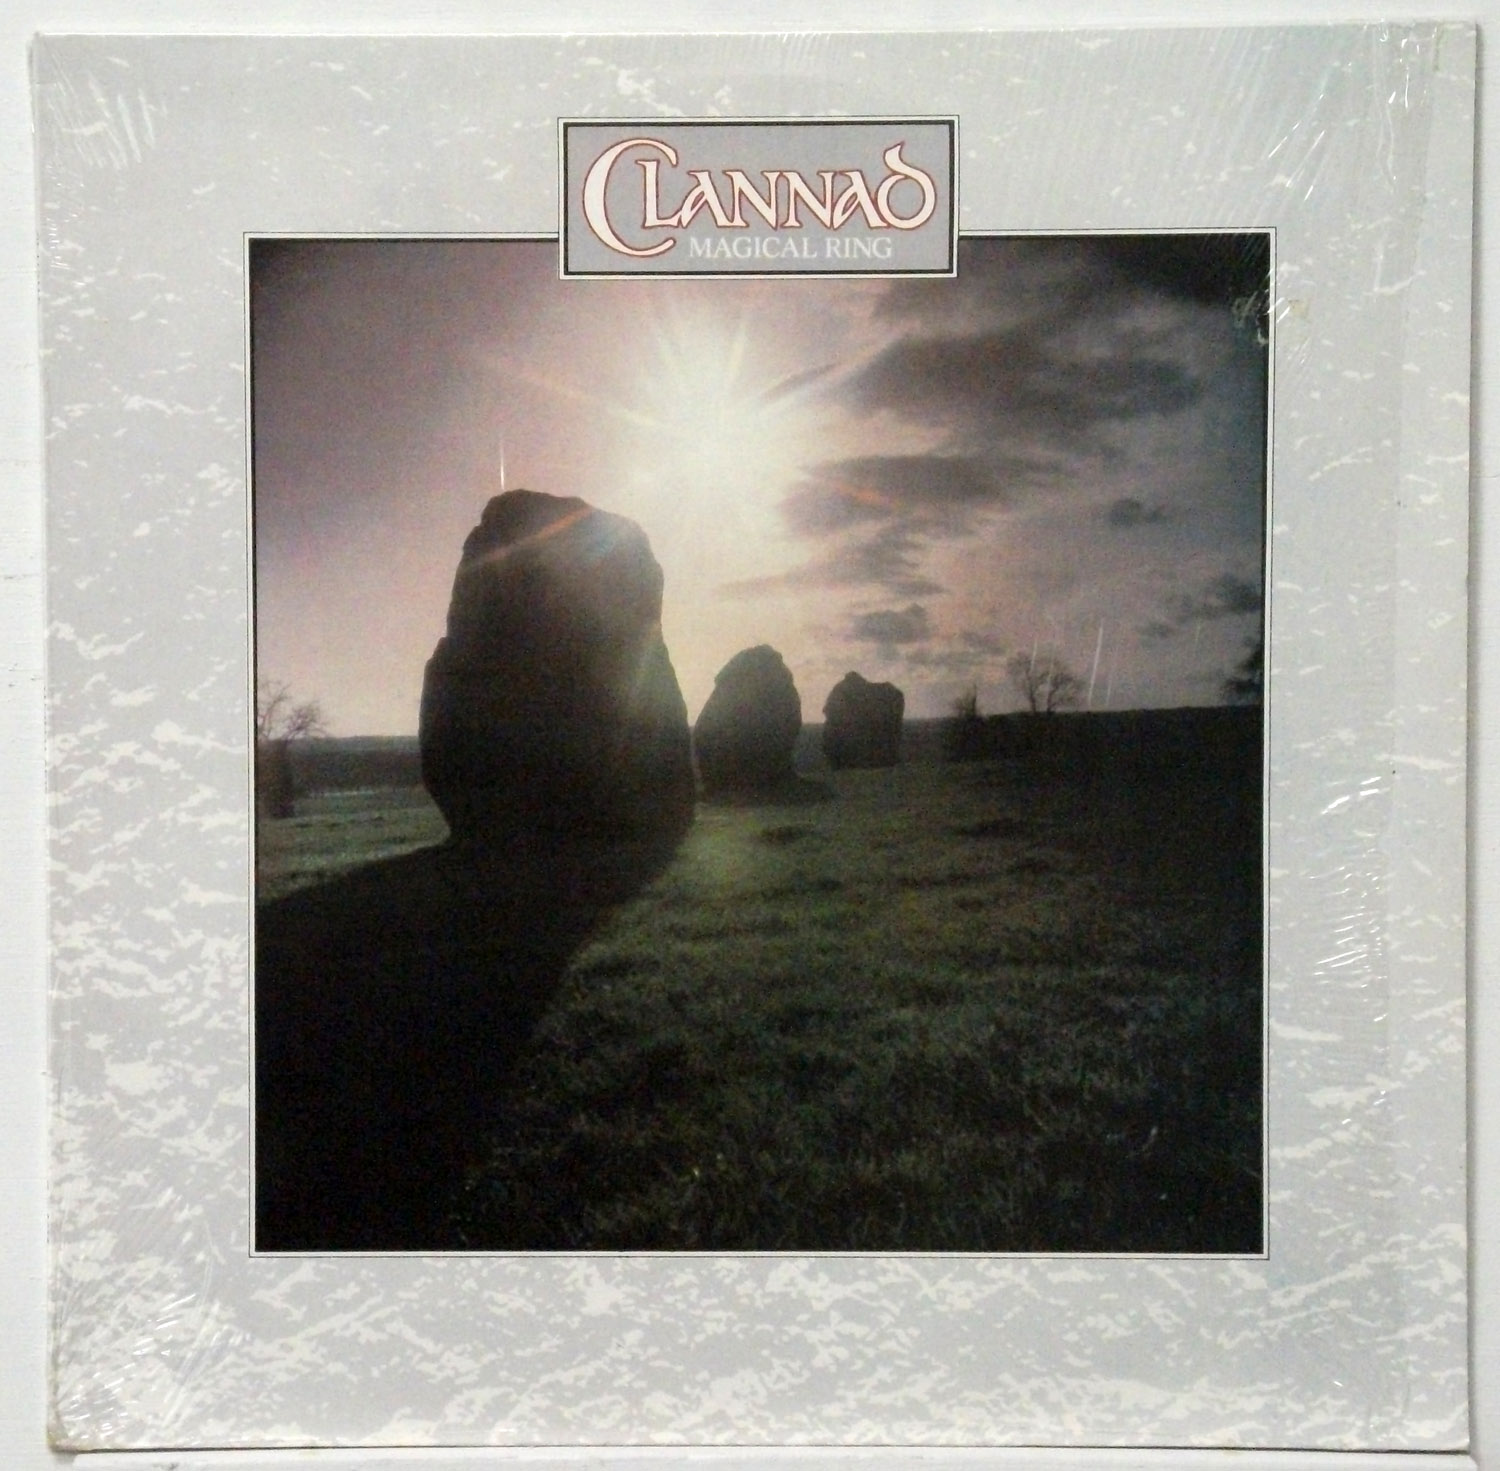 Clannad - Magical Ring 1983 original Irish LP in shrink wrap